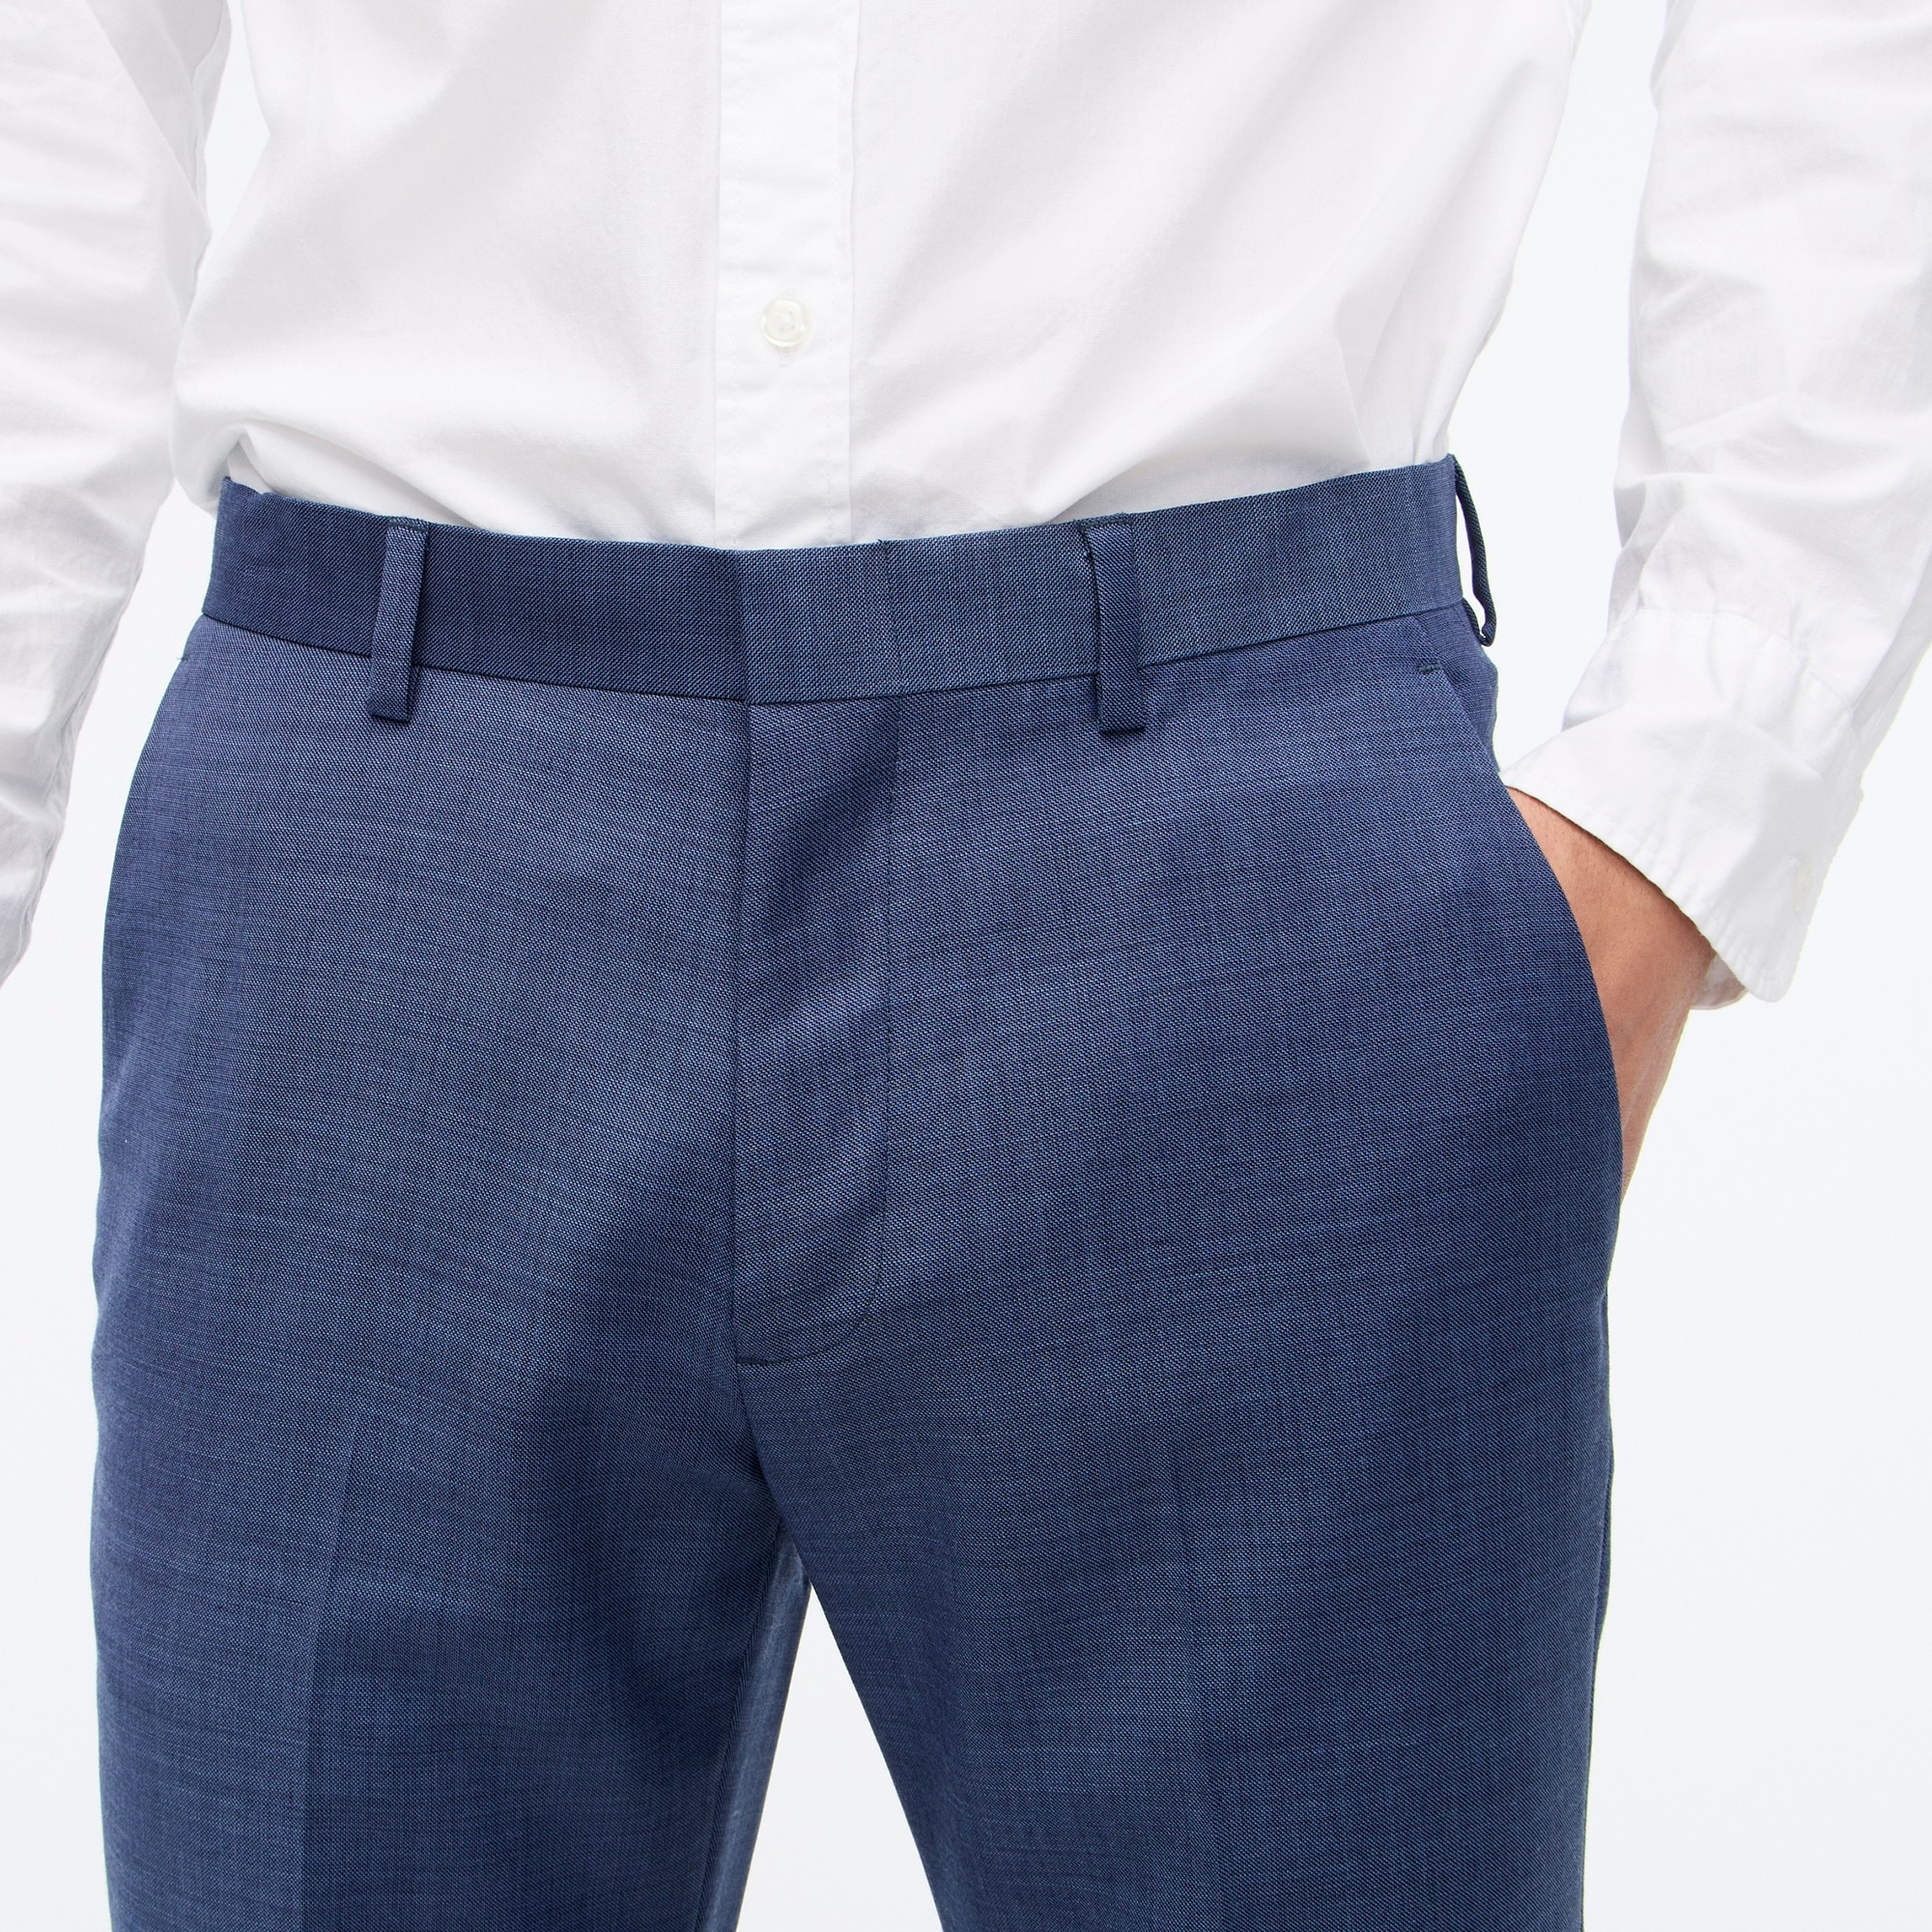 Image 3 for Slim Thompson suit pant in worsted wool